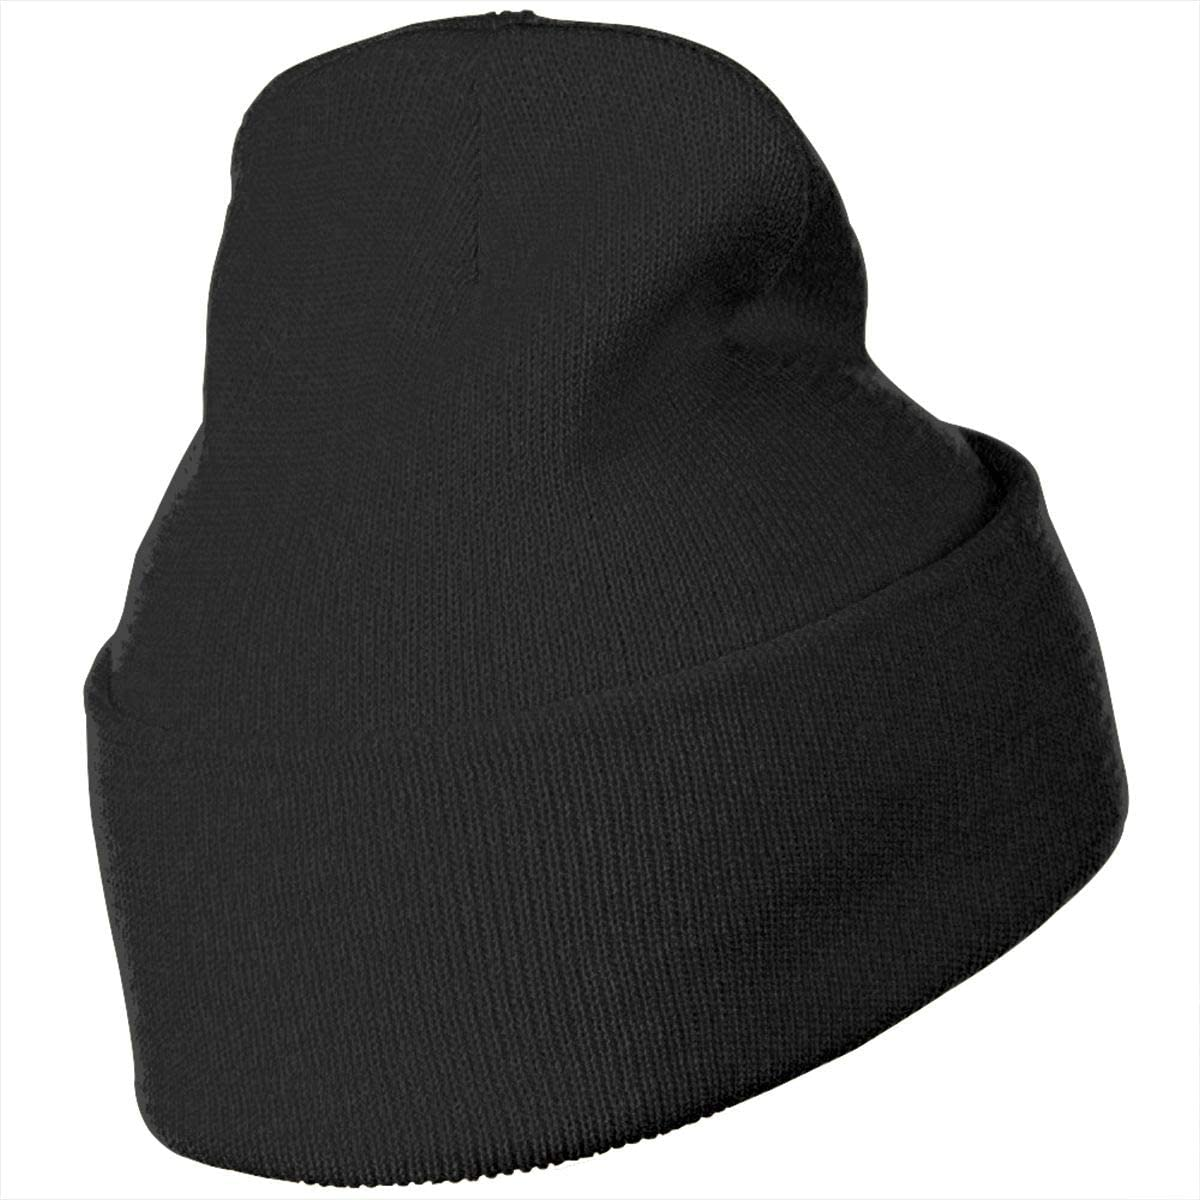 JZMY6 Galaxy Solid Color Beanie Hat Skull Cap